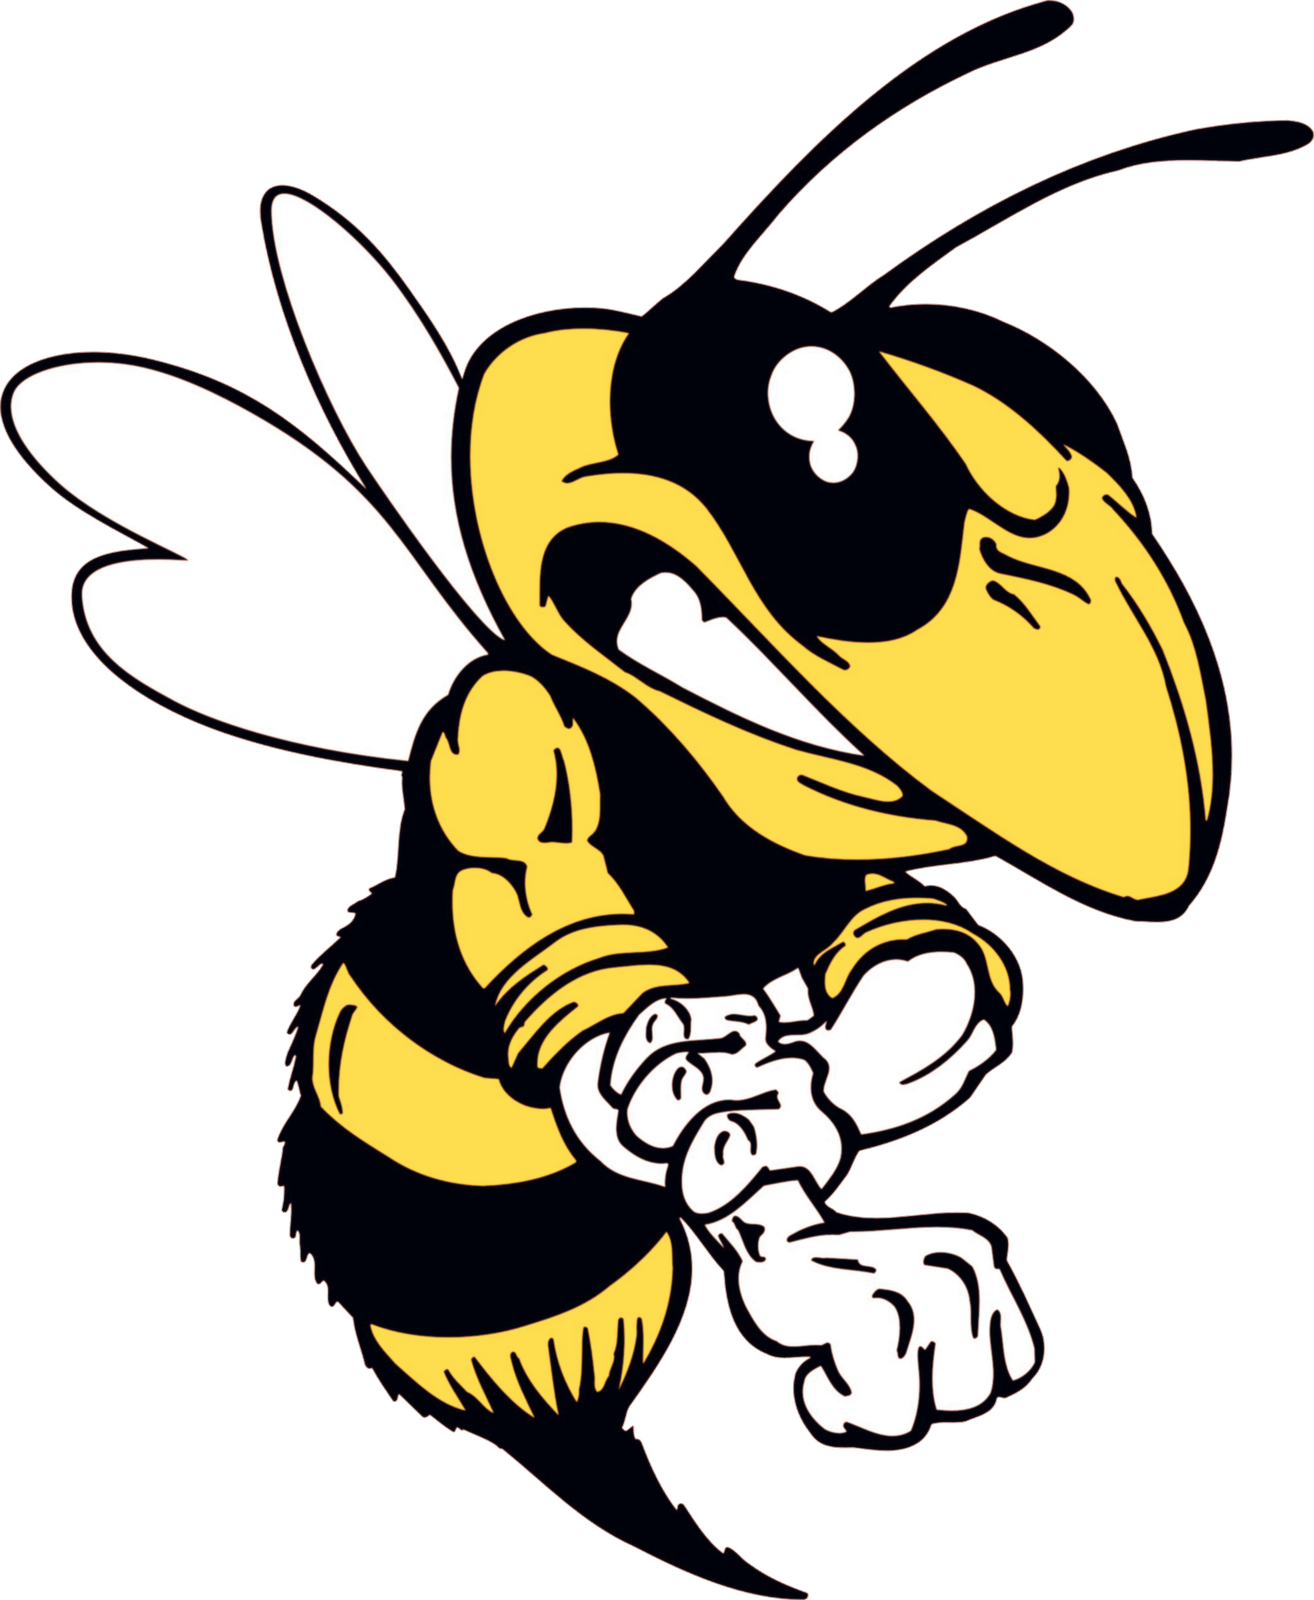 Hornet clipart mad. Antiphospholipid and pesticides effects